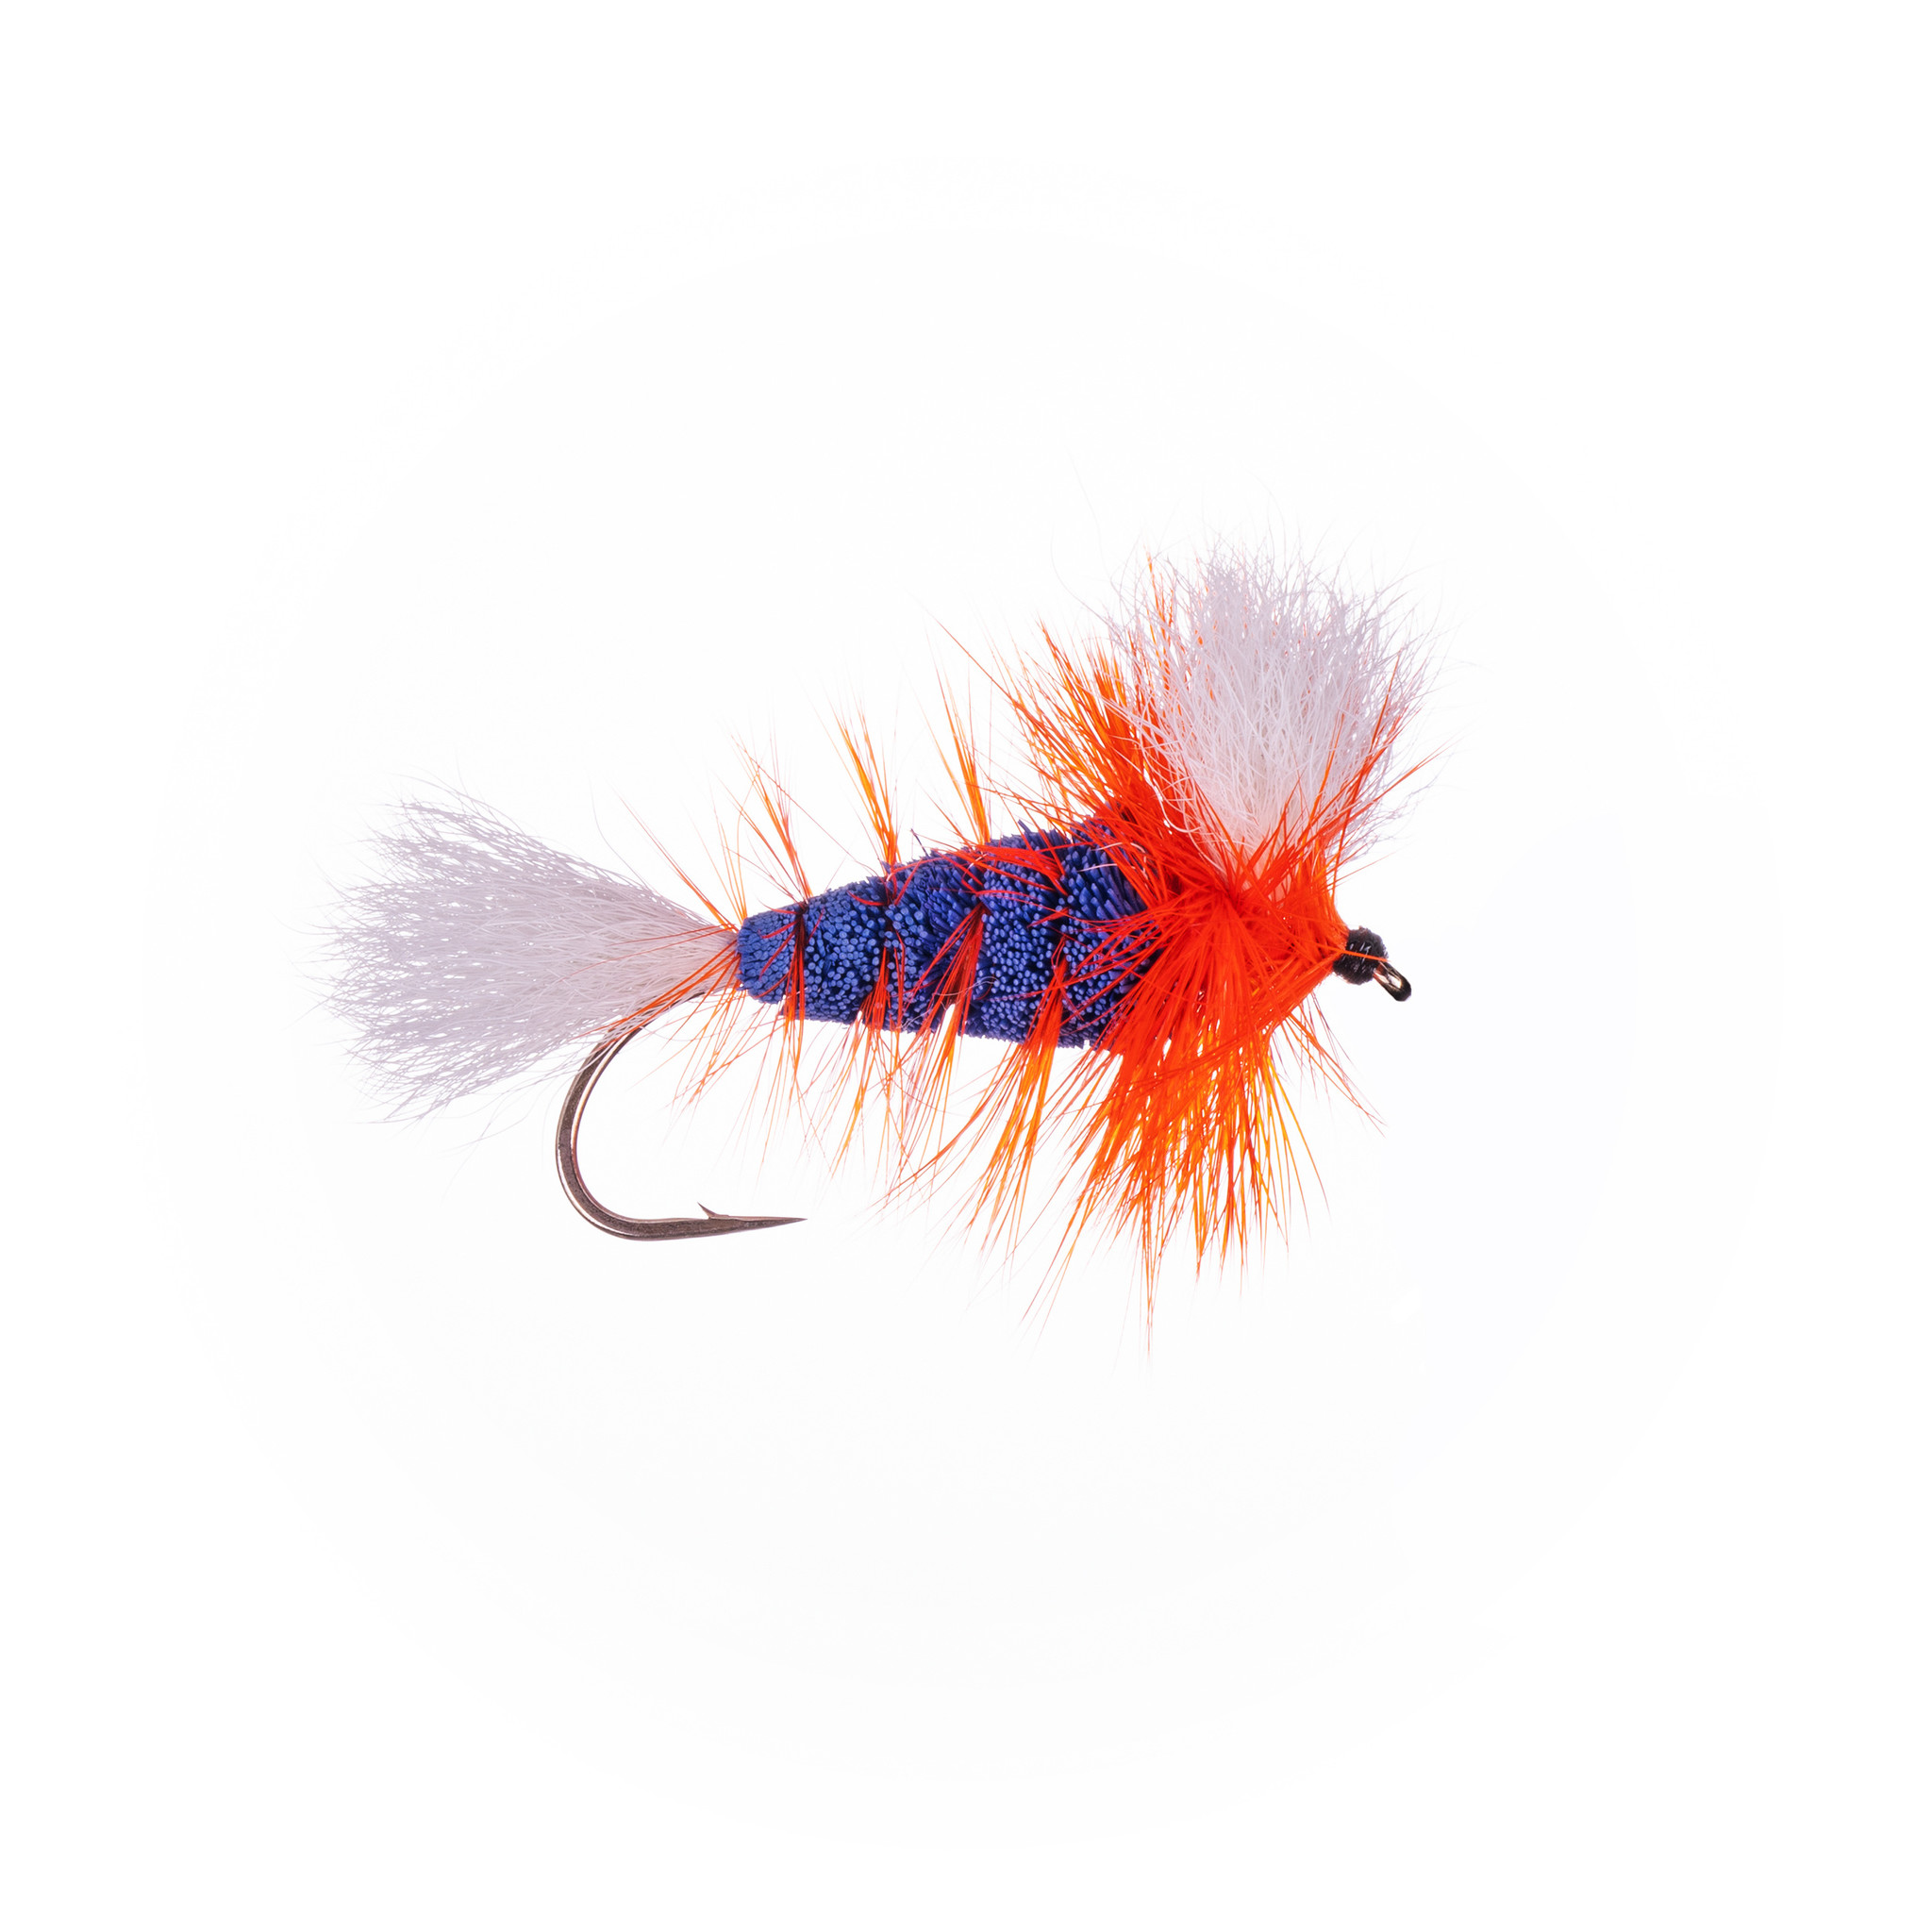 Labatt Blue-White Tail-Hot Orange Hackle (Wulff Bomber) #4